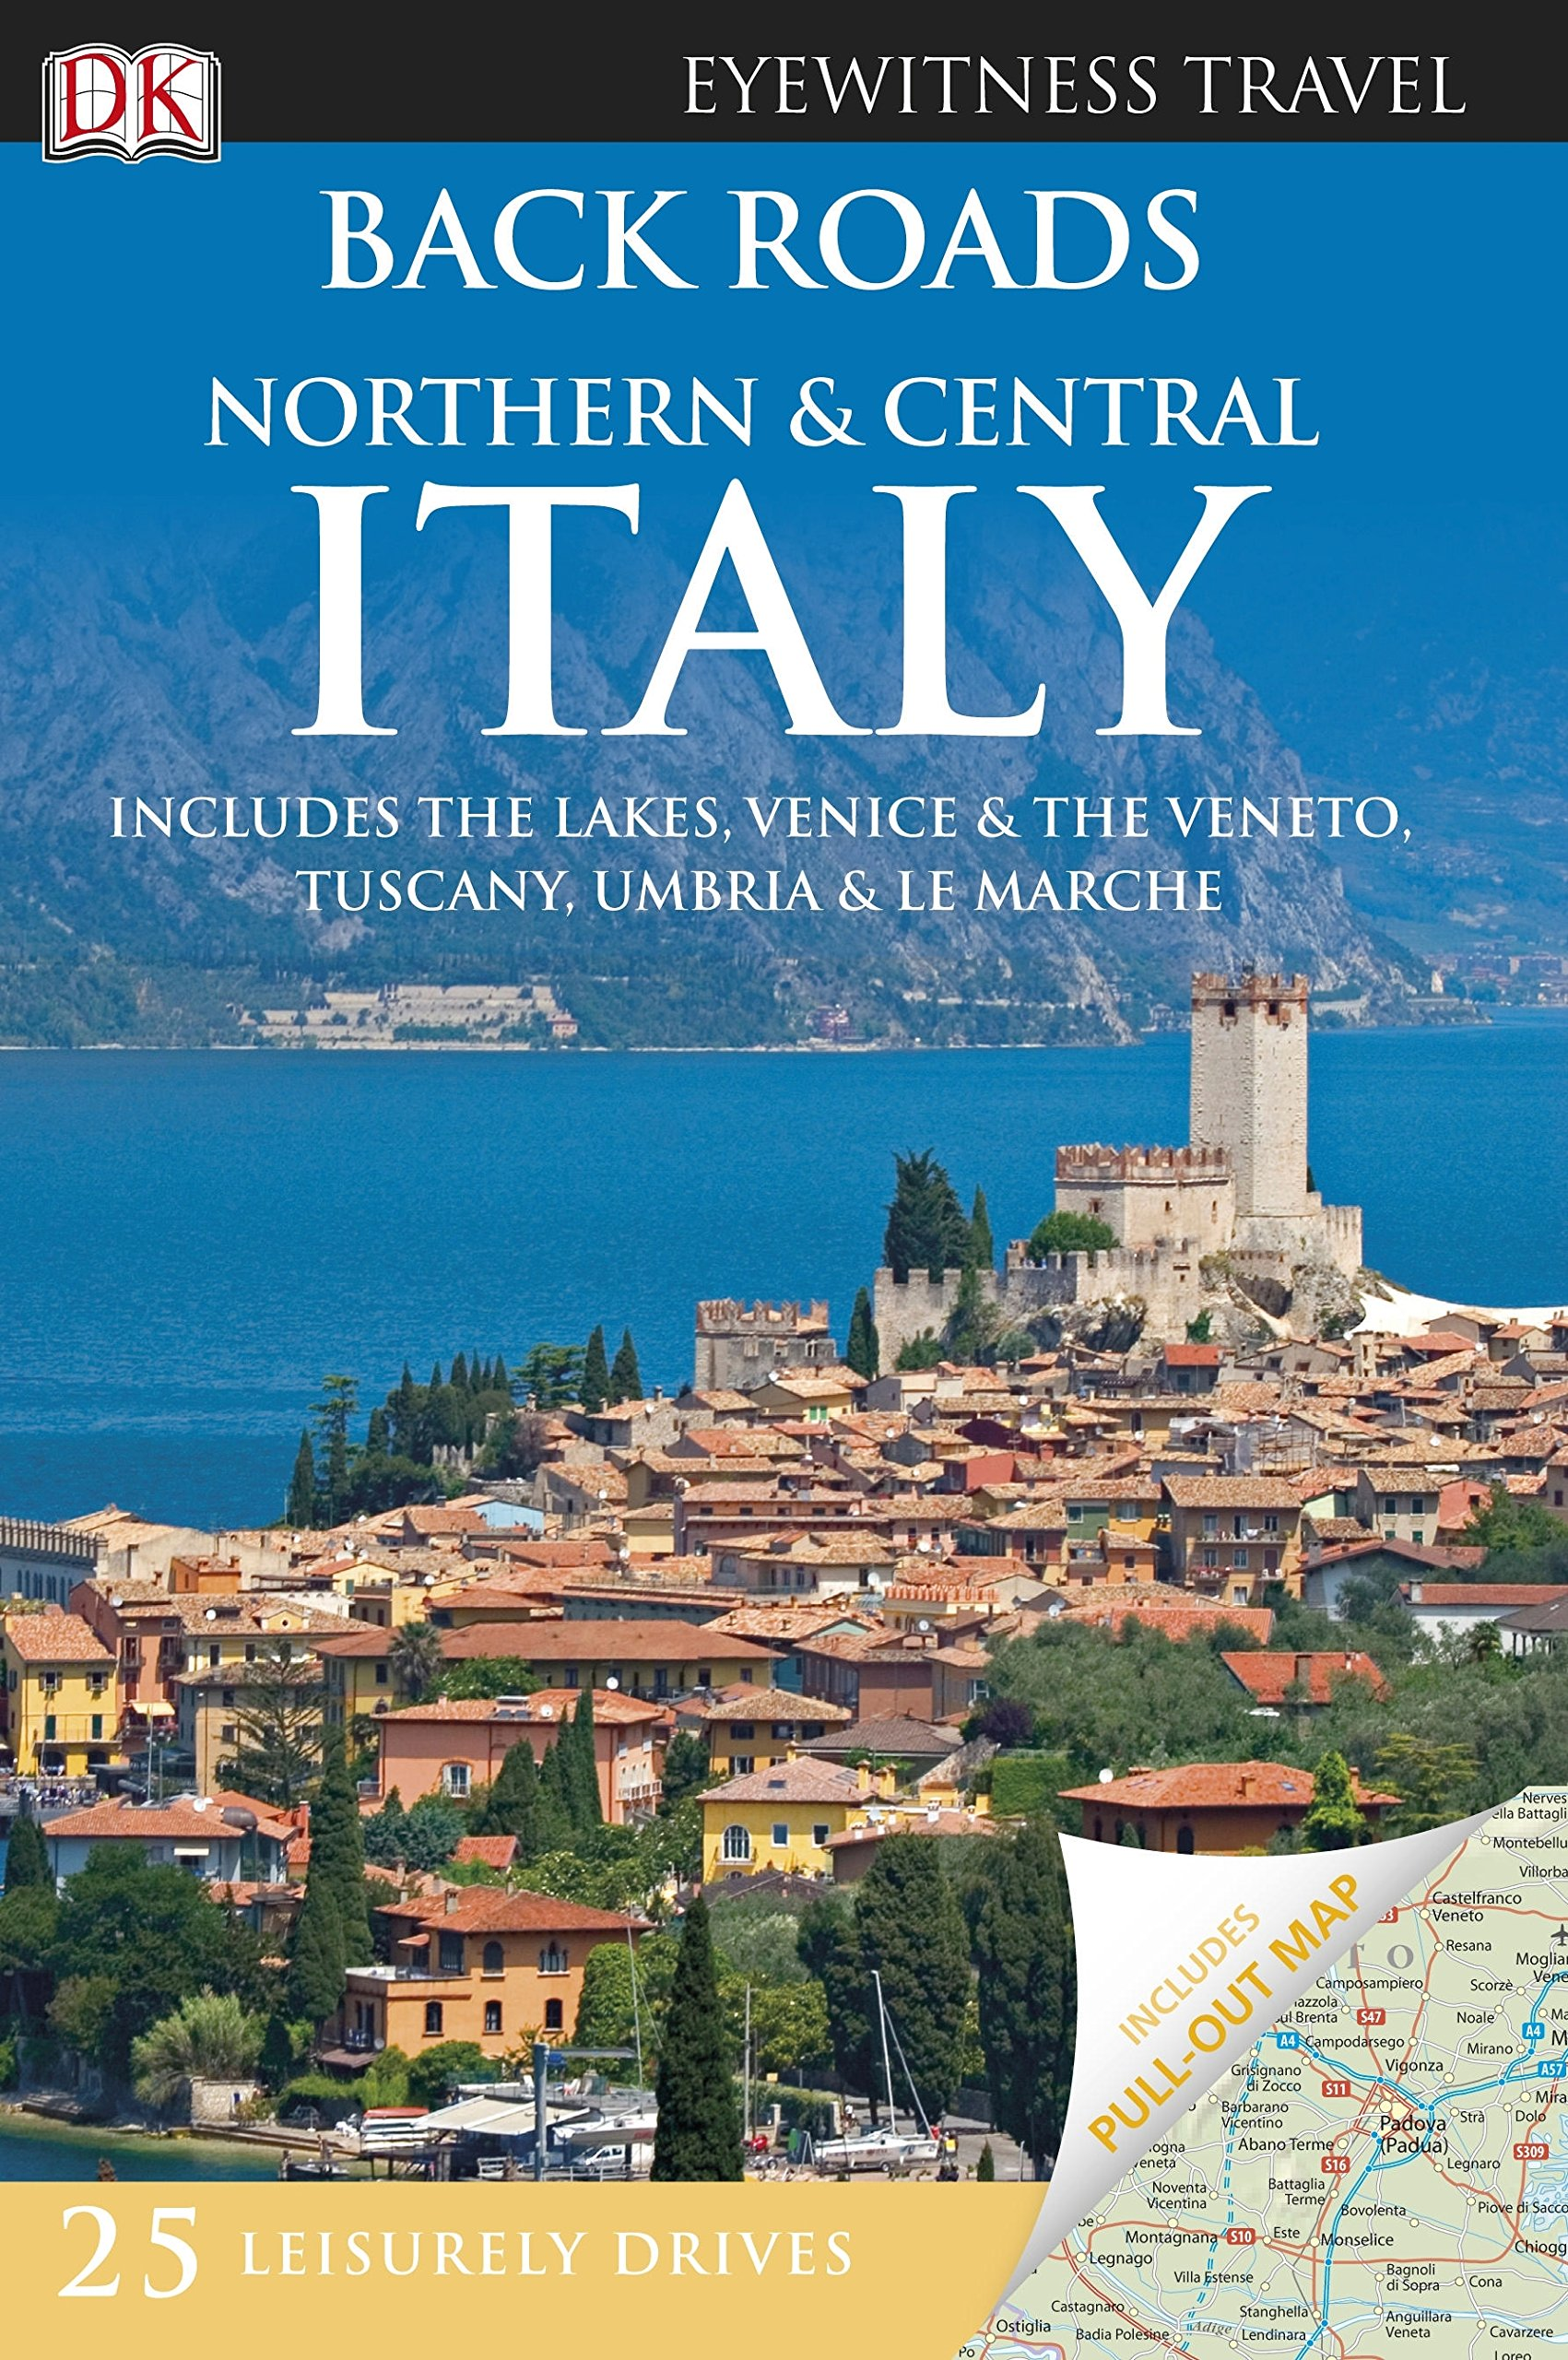 Back Roads Northern & Central Italy. (DK Eyewitness Travel Guide) pdf